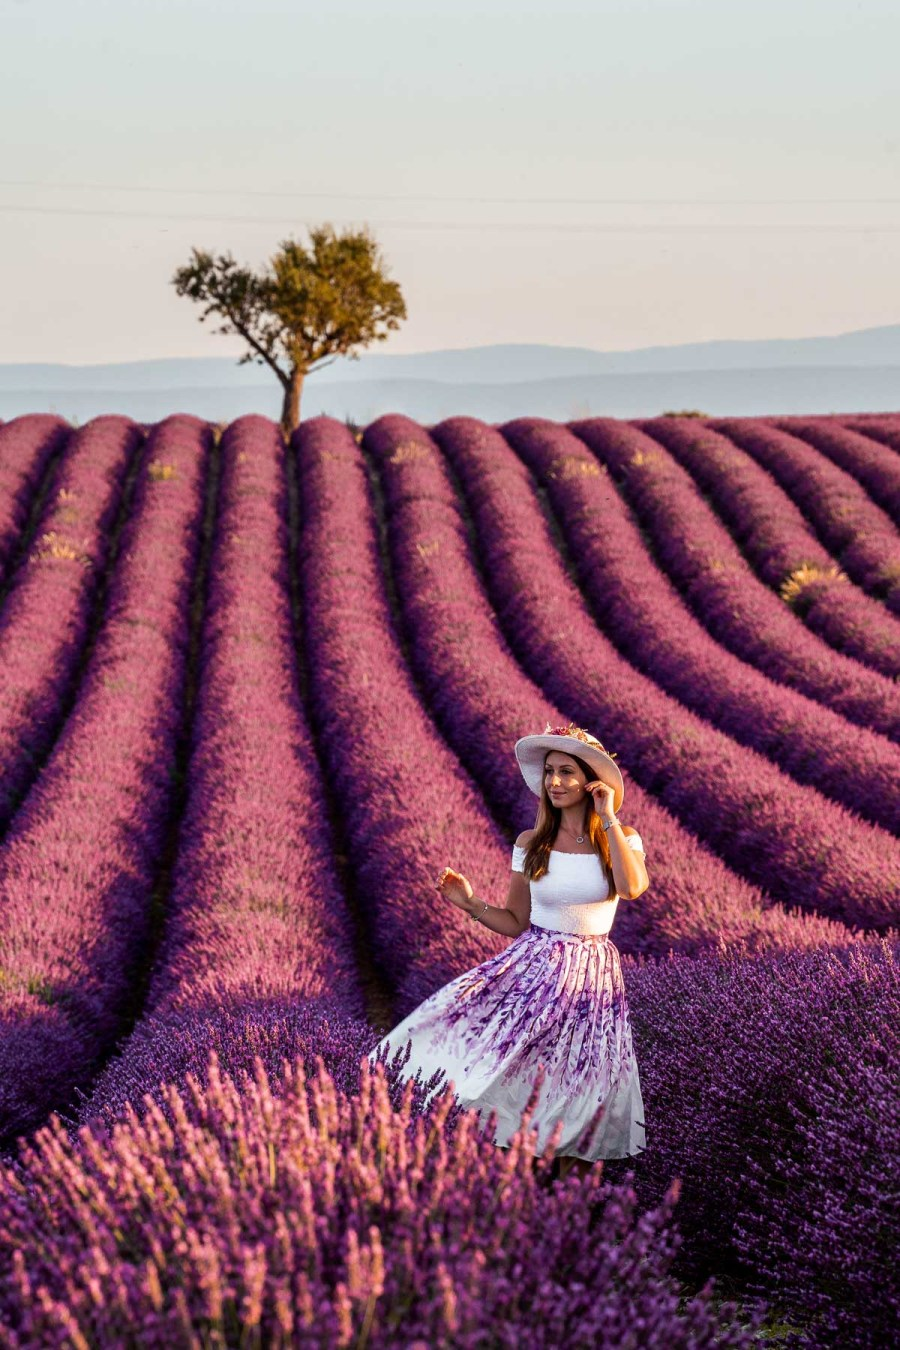 Girl in a purple skirt standing in the lavender fields with a heart shaped tree in the background in Provence